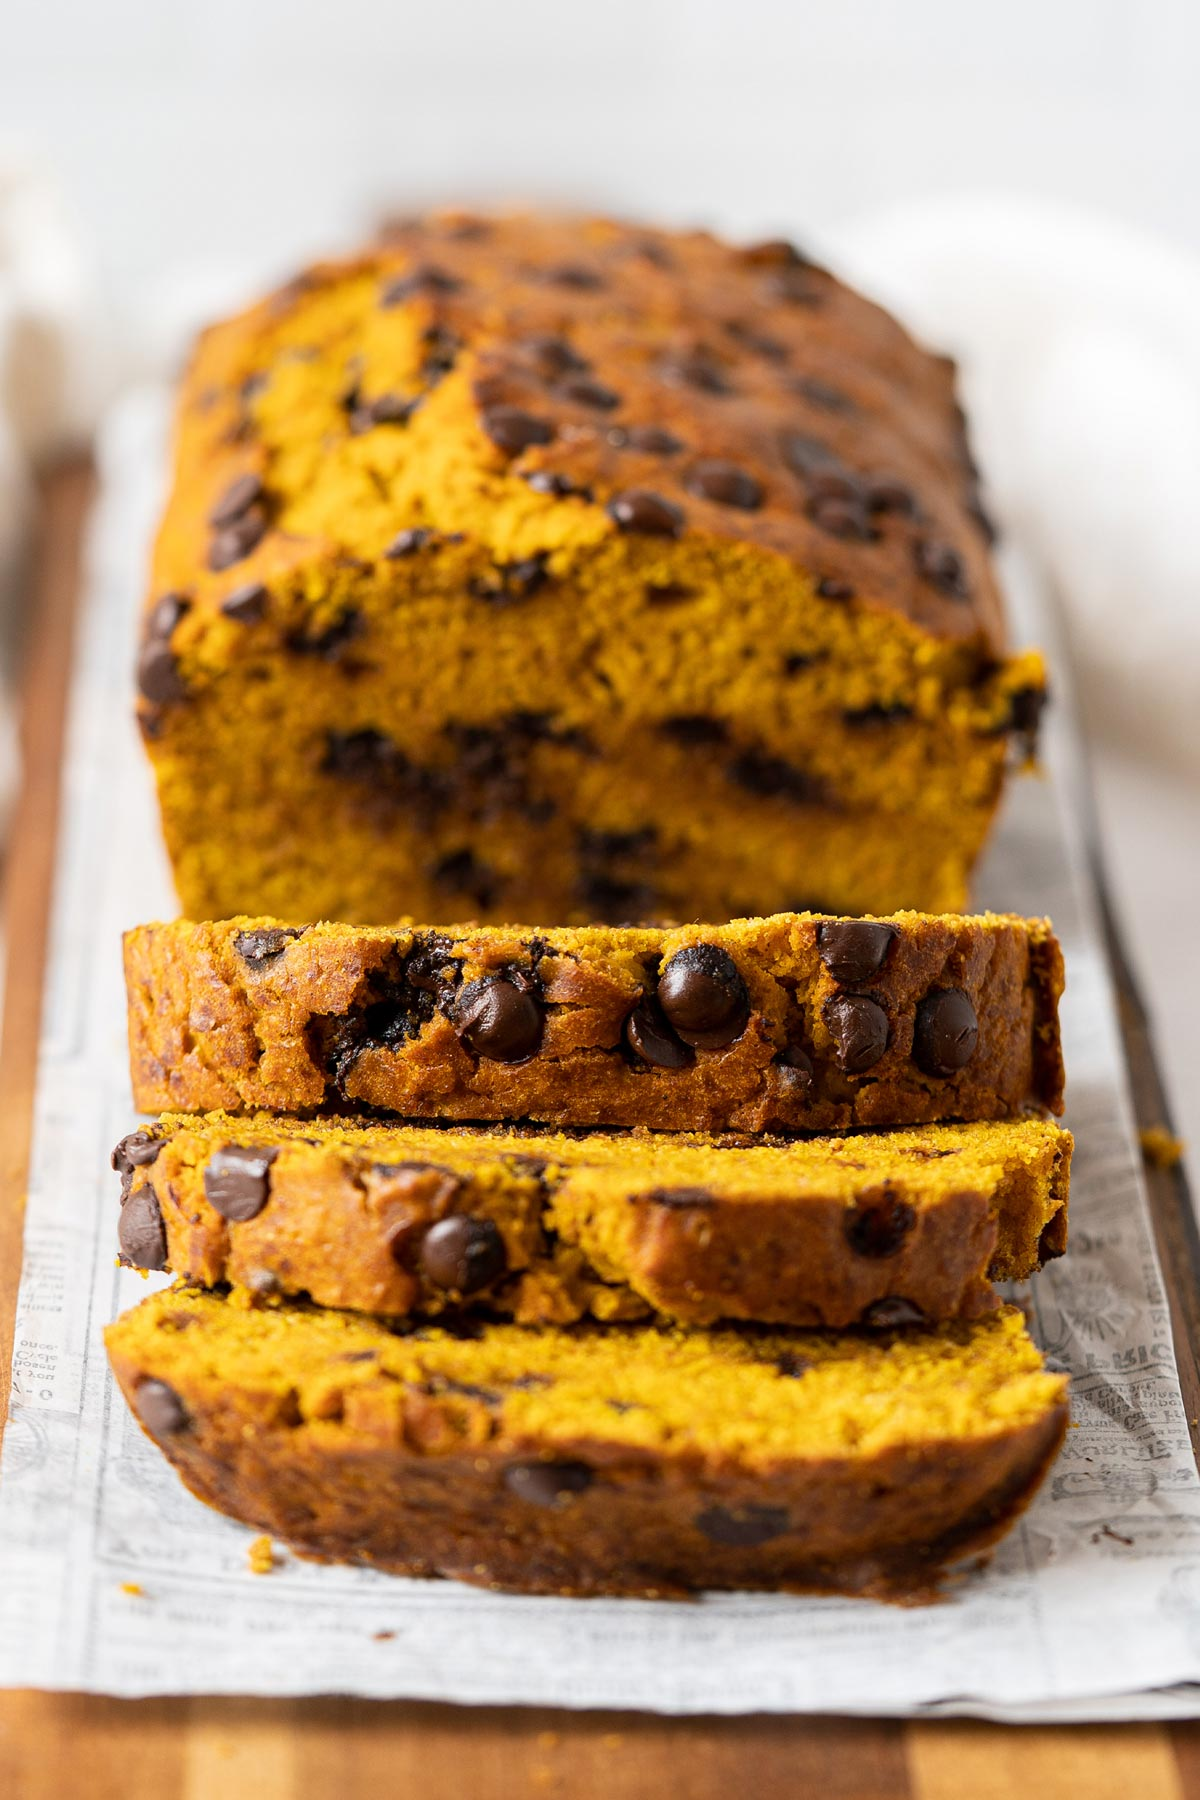 Sliced healthy chocolate chip pumpkin bread view from front